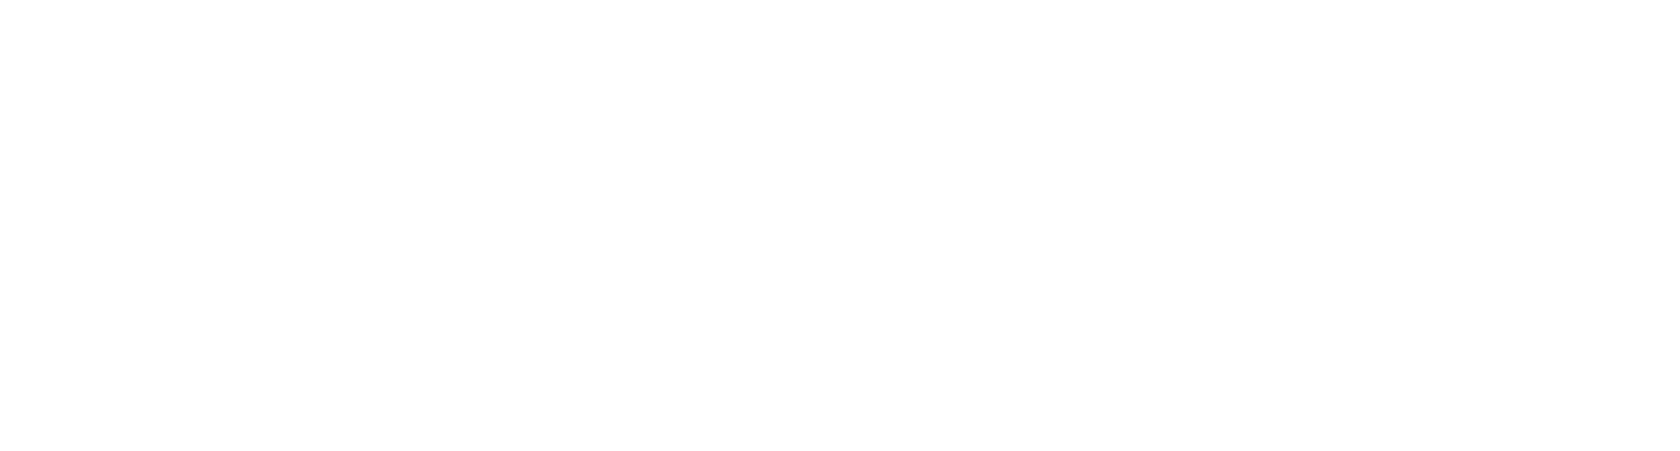 Summit_Olympus_logo_white